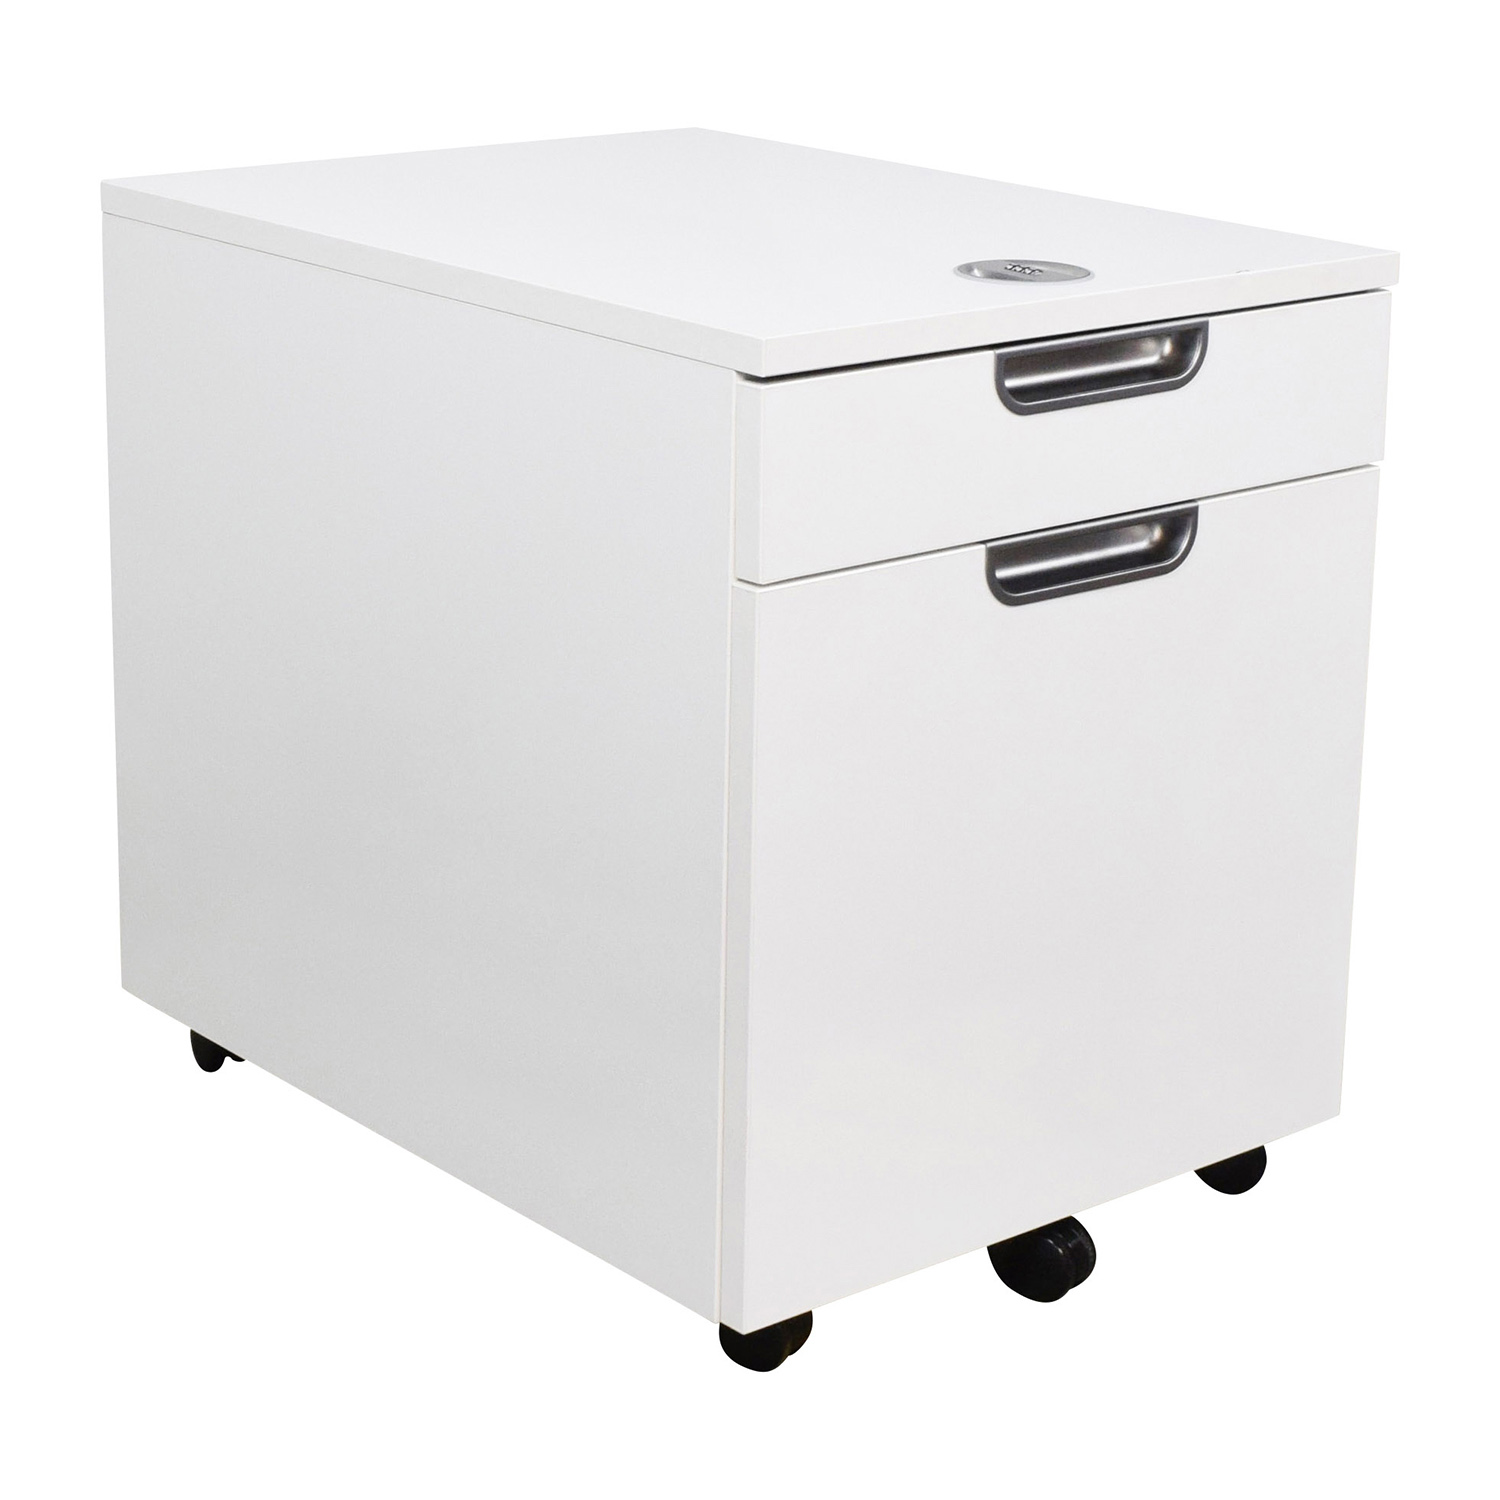 Merveilleux ... IKEA IKEA Galant White Combination Lock File Cabinet Tables ...